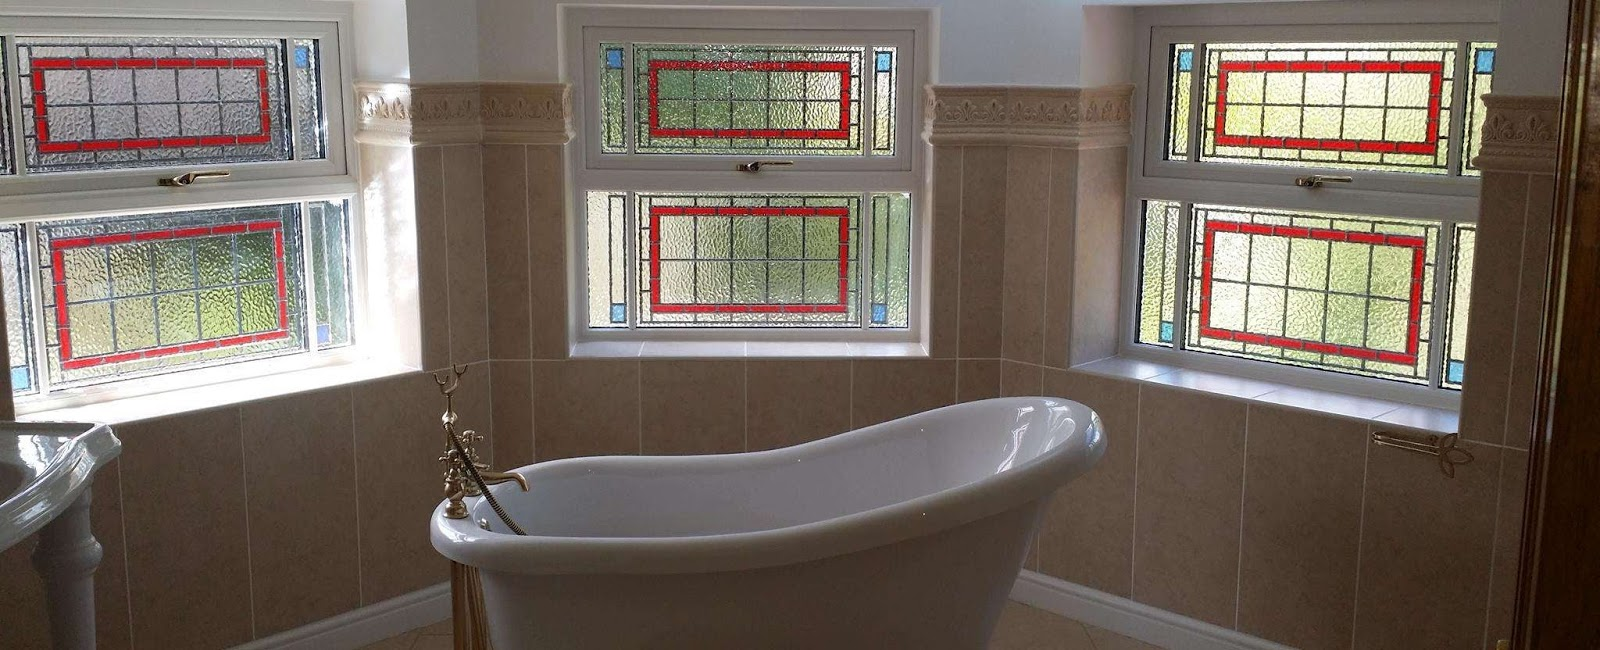 Bathroom with decorative windows